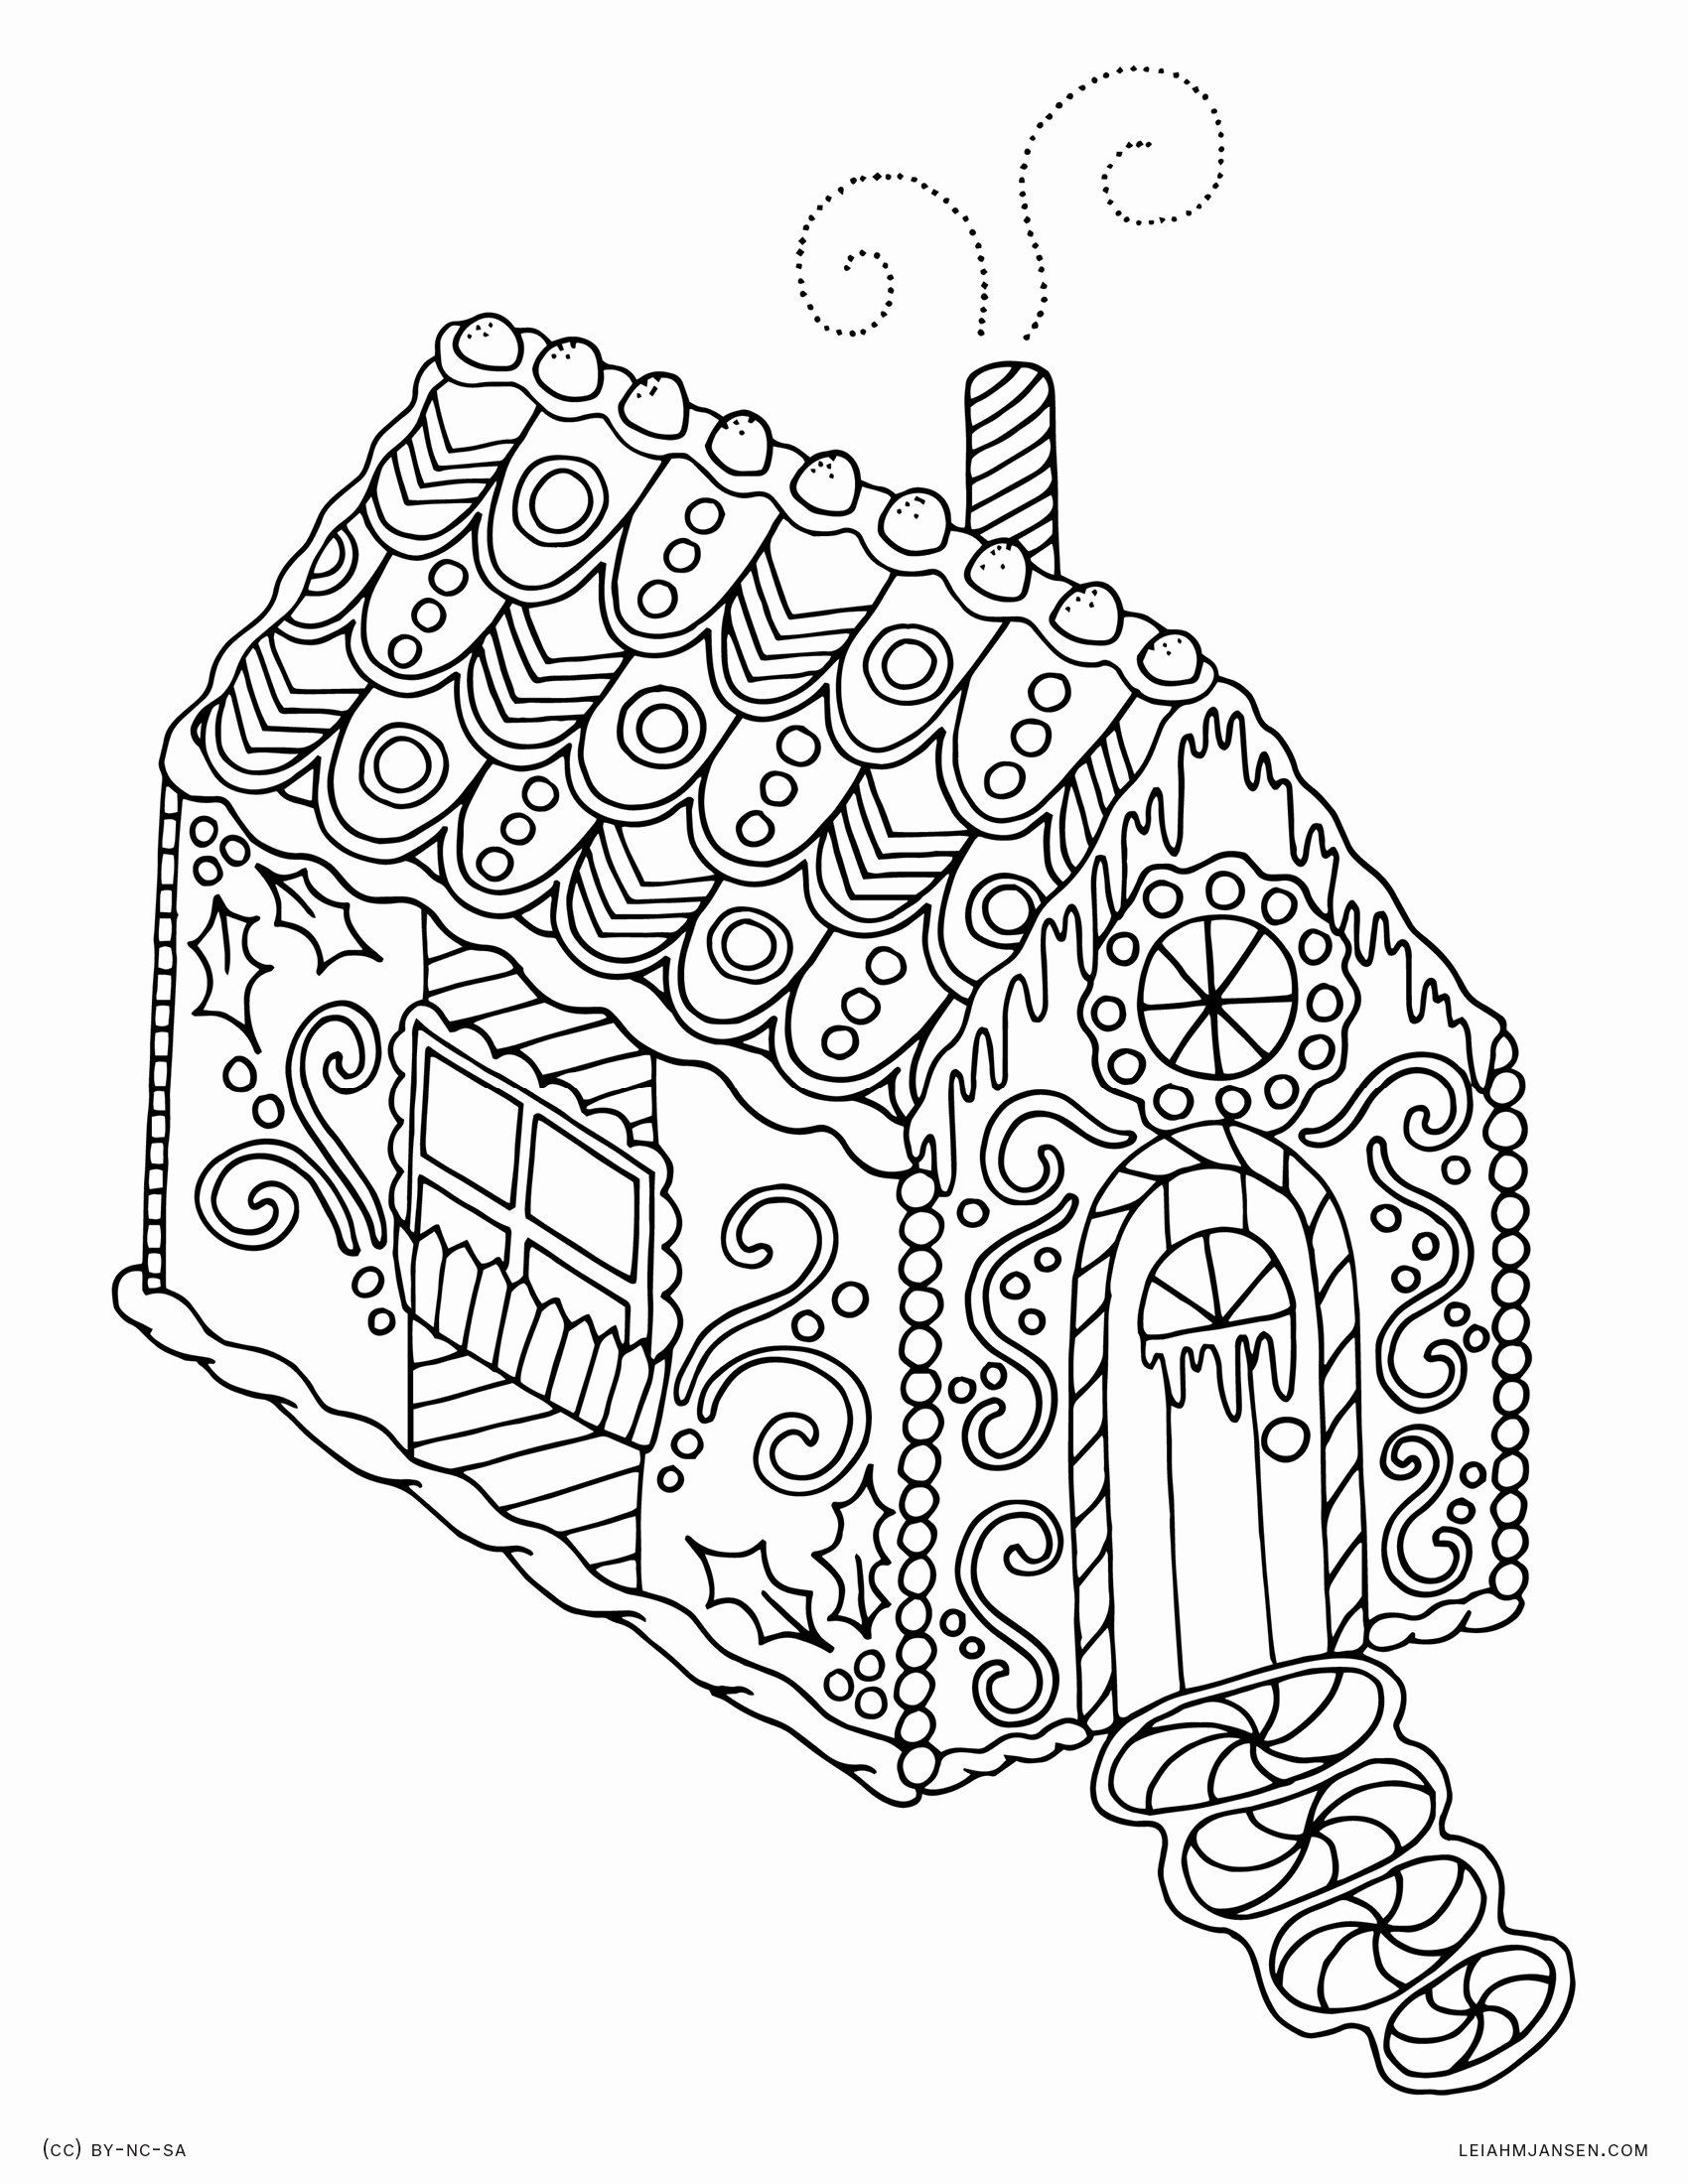 Happy Holidays Coloring Pages Printable In